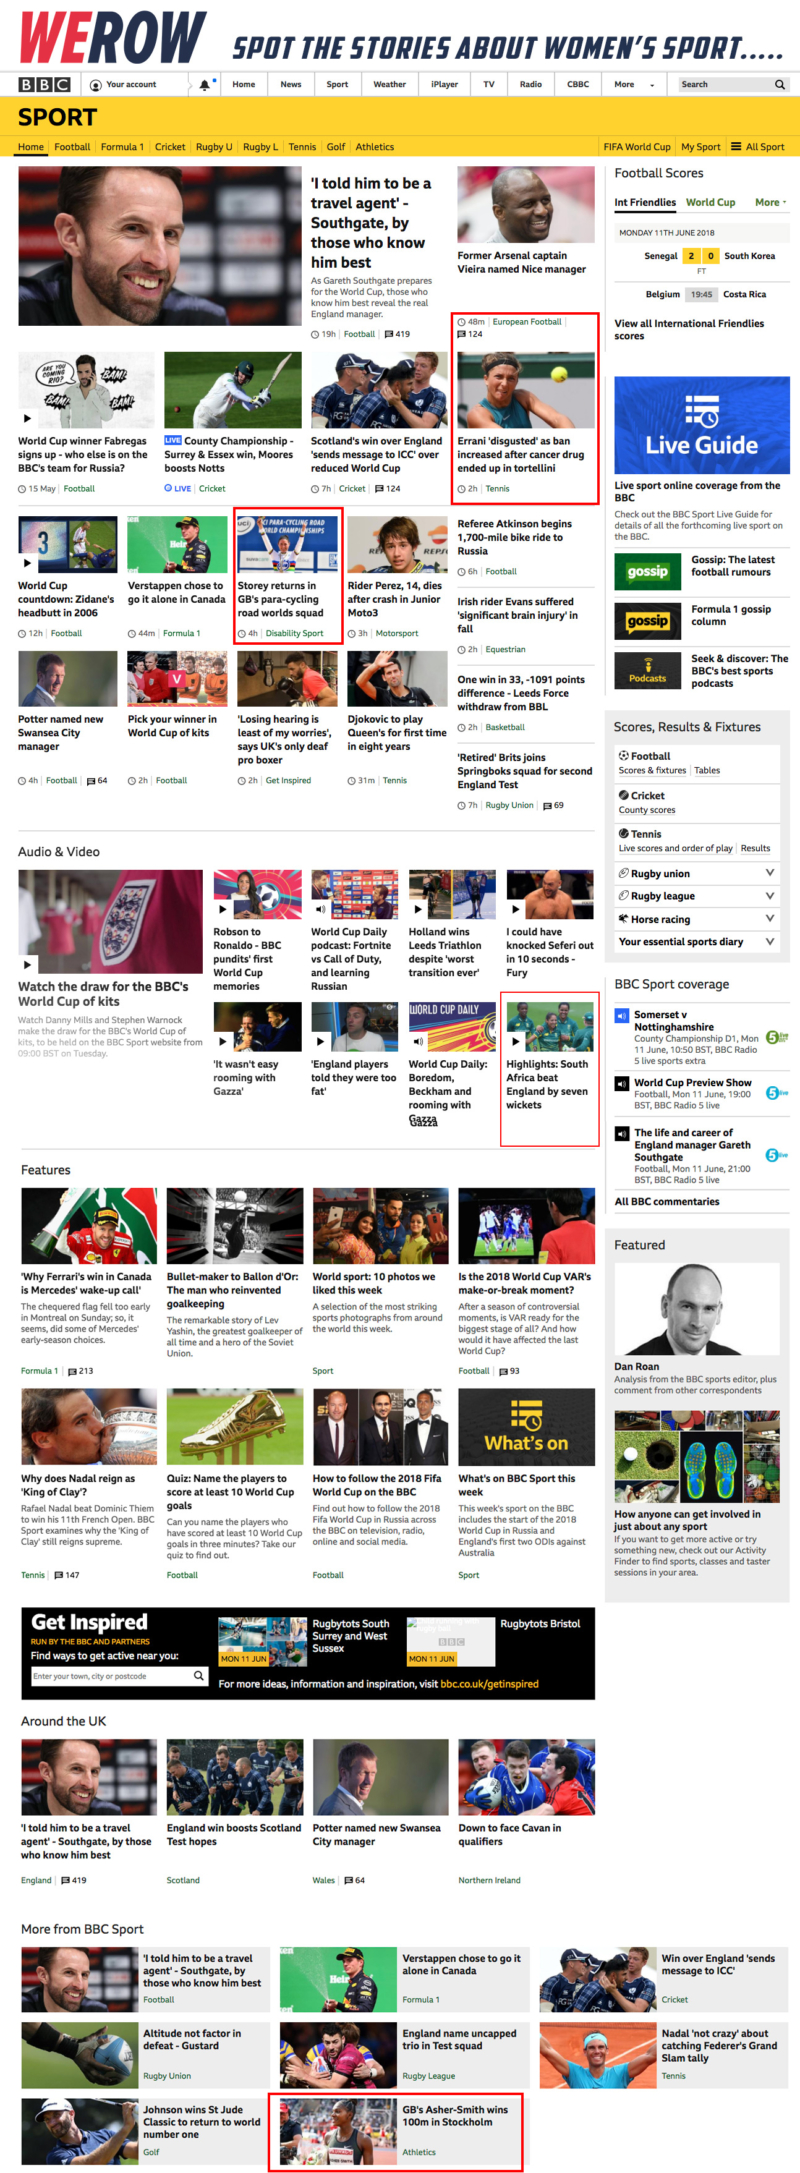 BBC Sport showing just 4 items of women's sporting news